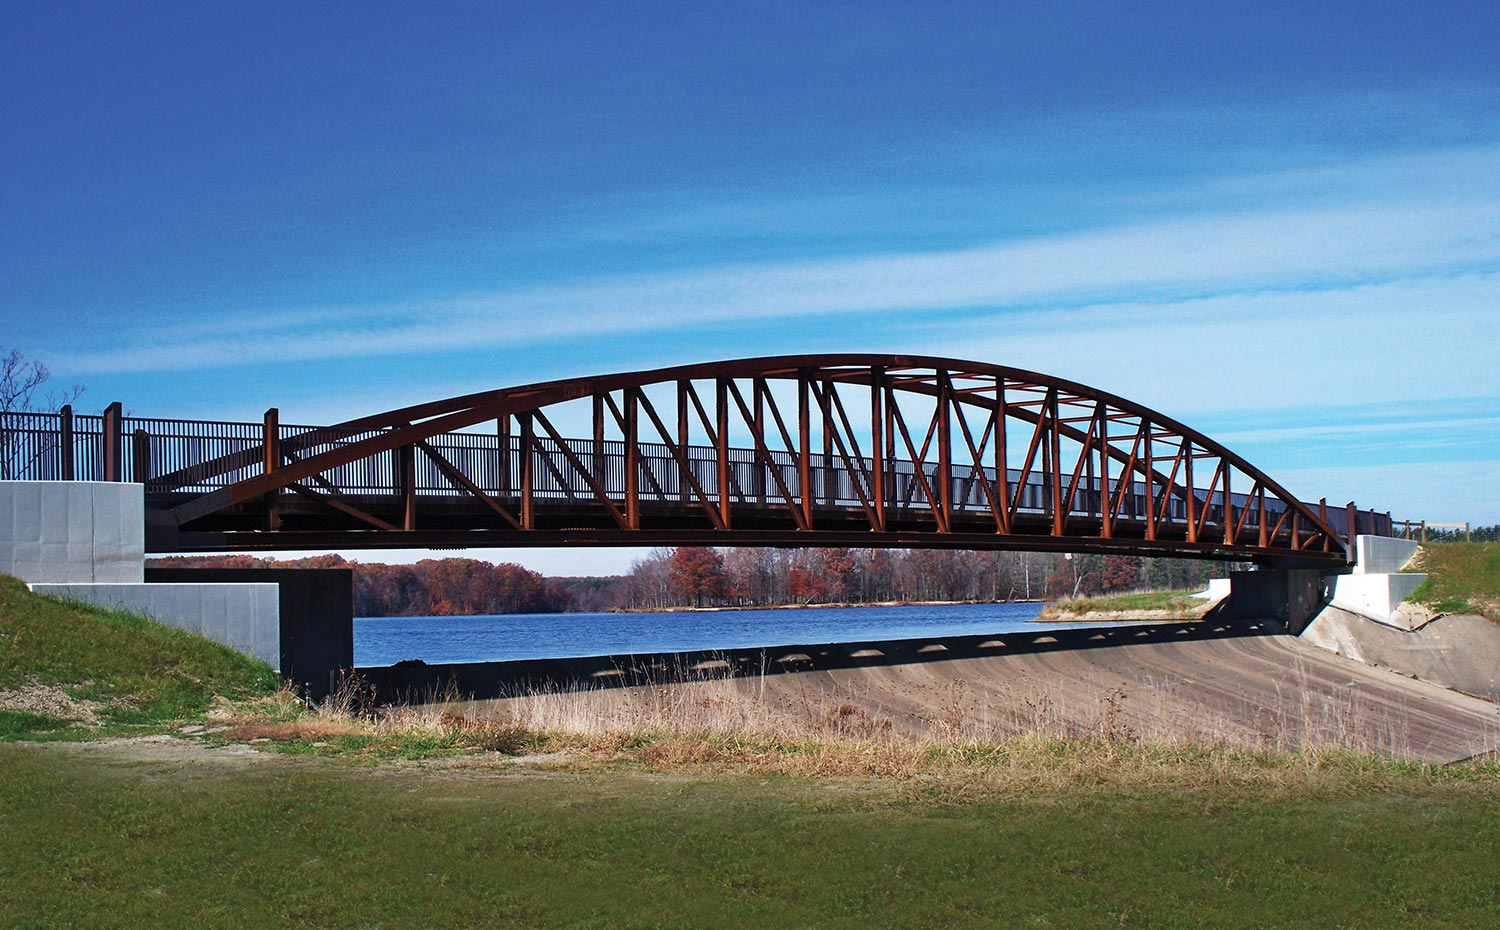 U.S. Bridge Seneca